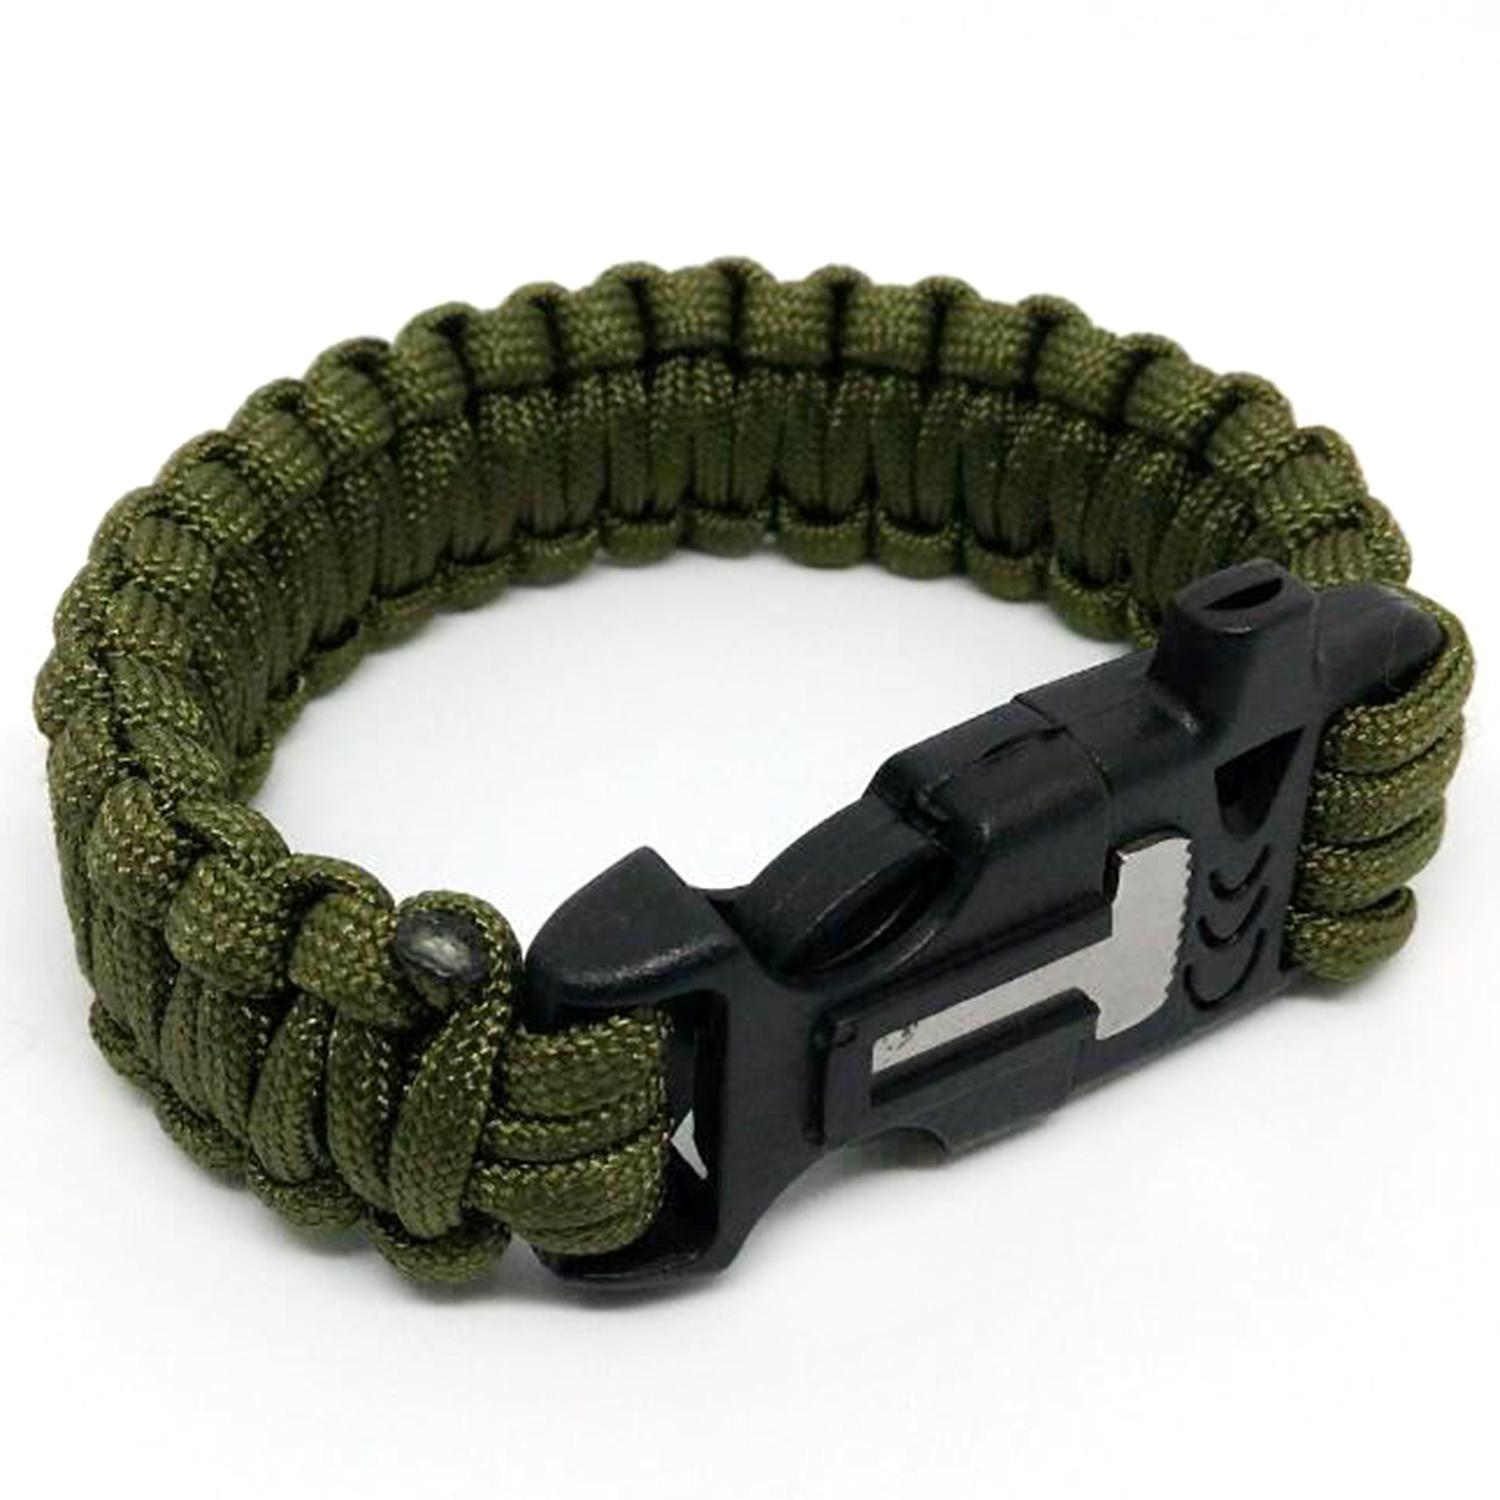 Survival Paracord Bracelet Whistle Gear Flint Fire Starter Scraper Kits By Happy Tree.